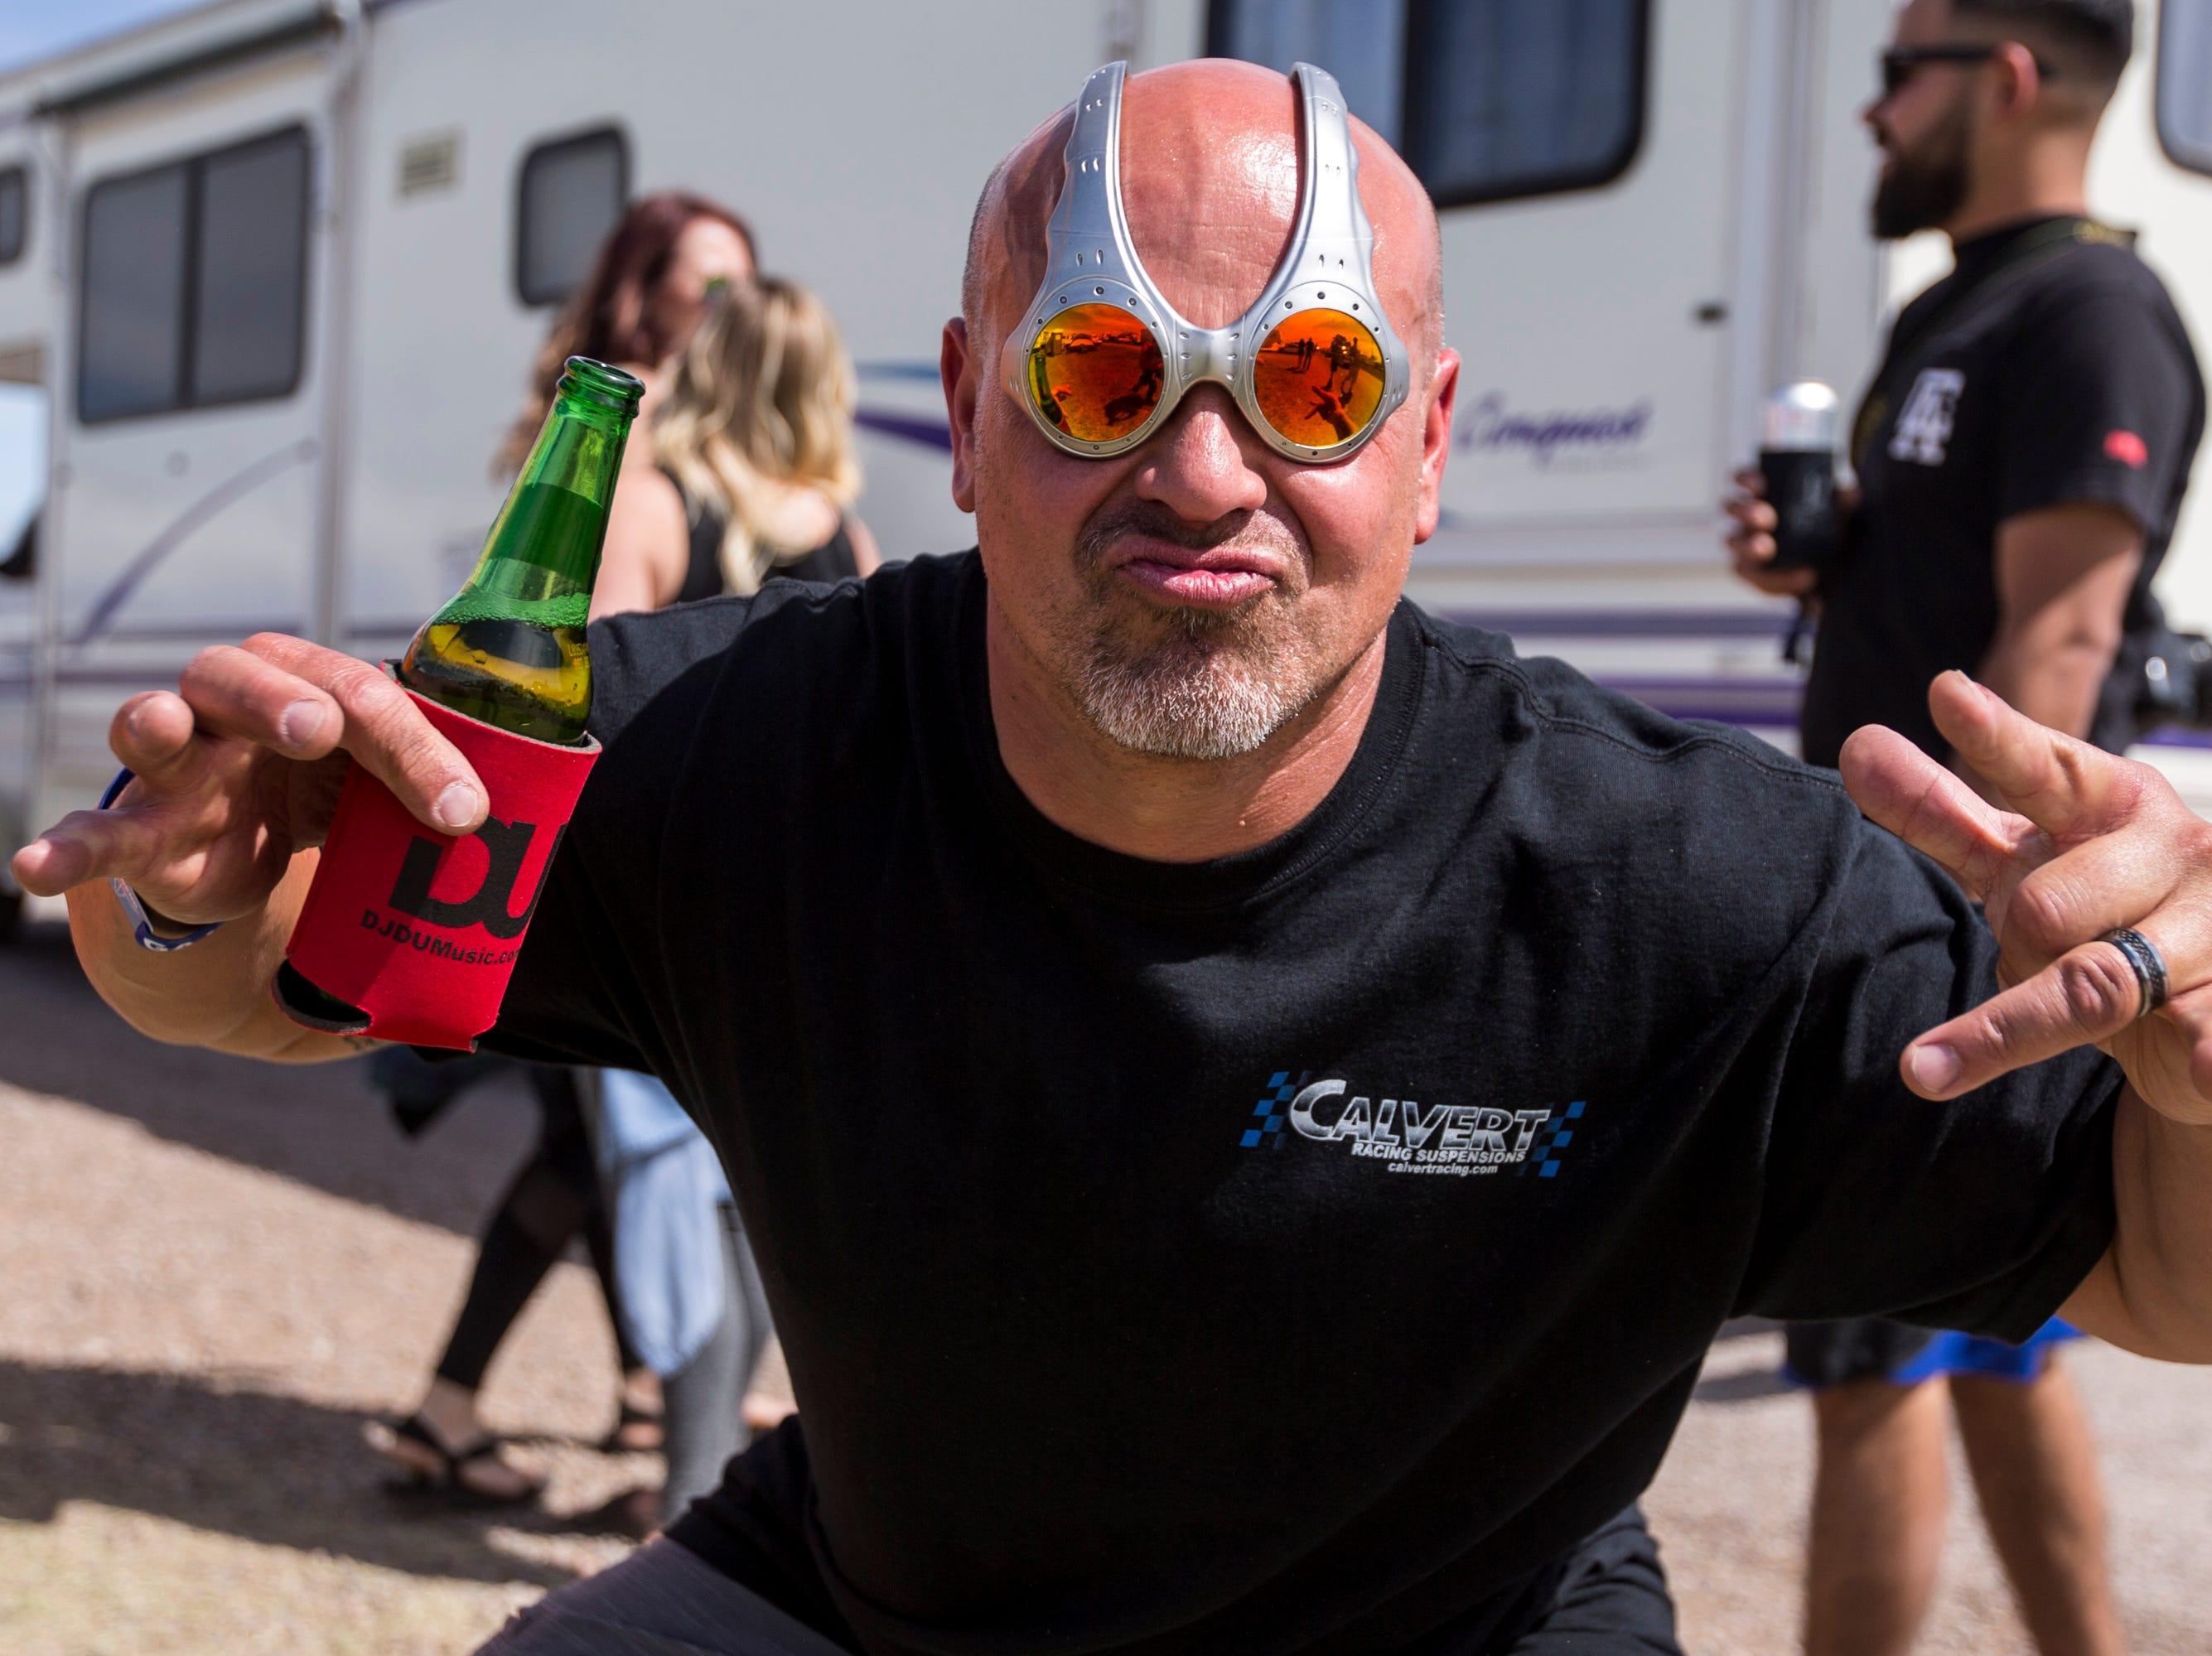 Dan Amarillas poses for a portrait on April 11, 2019, during Day 1 of Country Thunder Arizona in Florence.